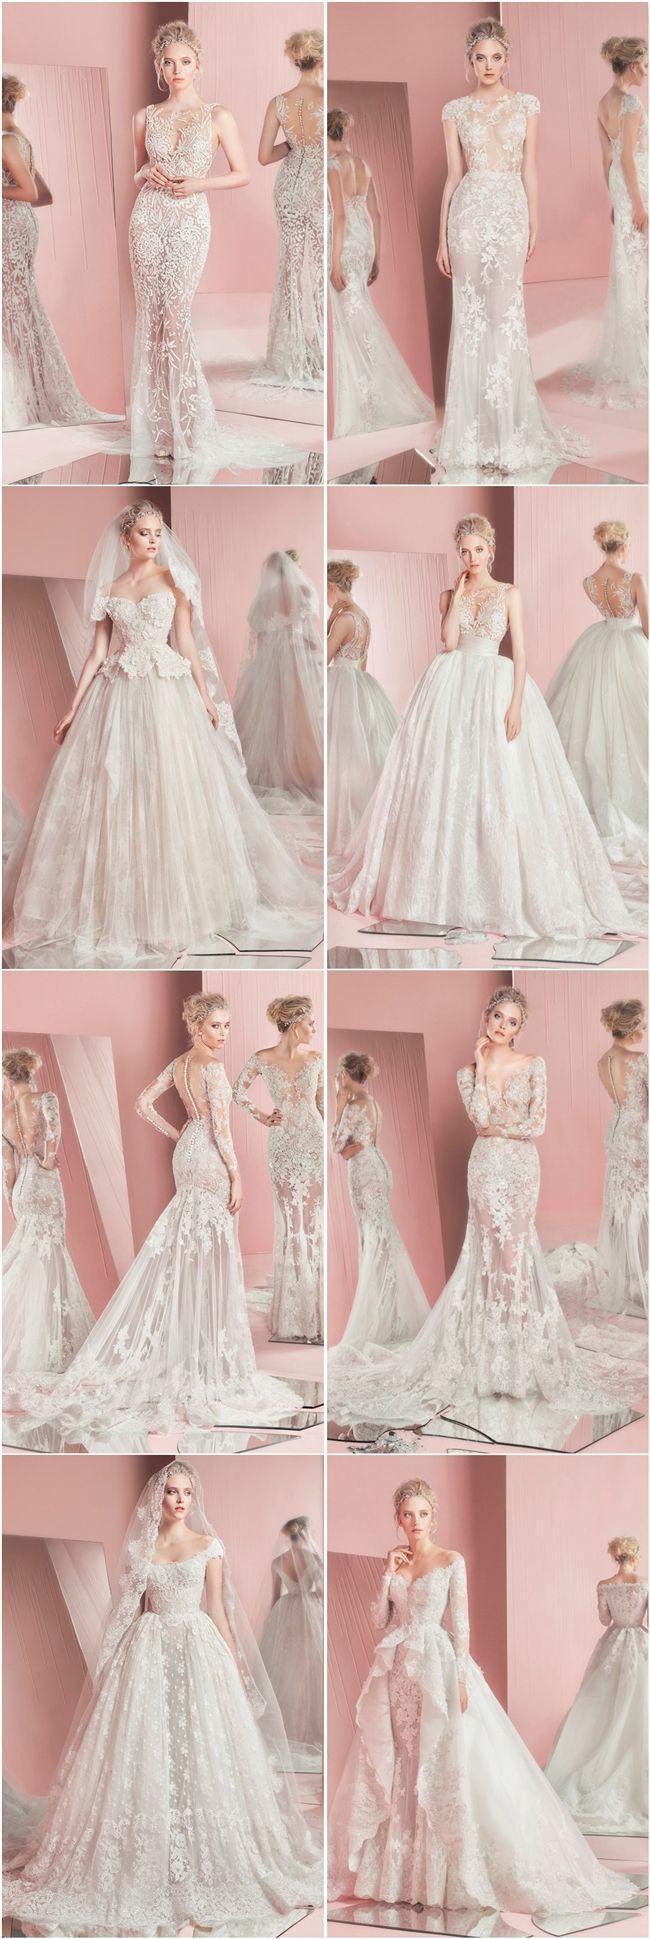 Zuhair Murad Bridal Spring 2016 Wedding Dresses | http://www.deerpearlflowers.com/zuhair-murad-bridal-spring-2016-wedding-dresses/